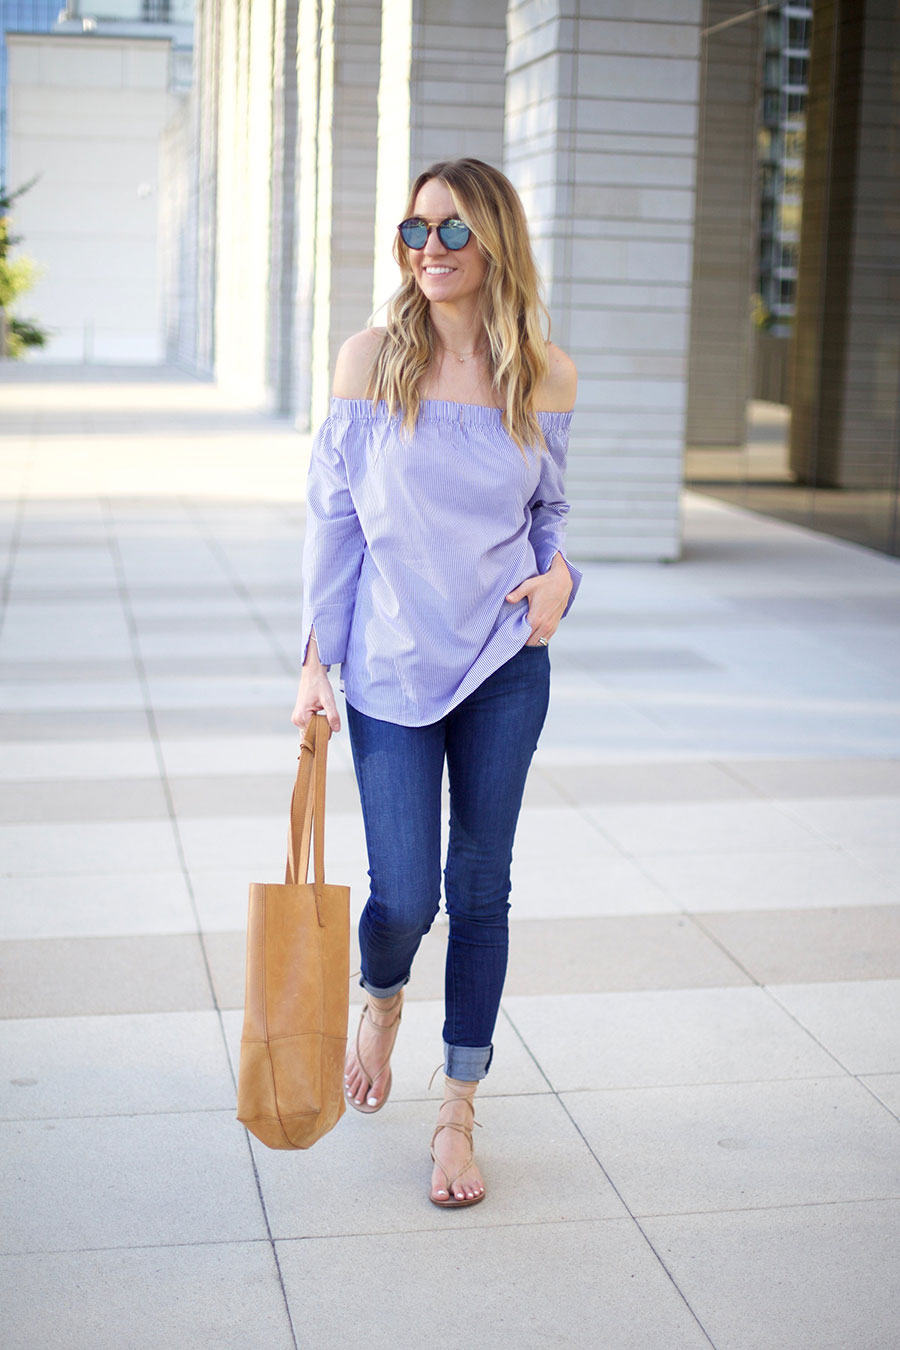 off the shoulder and comfy jeans